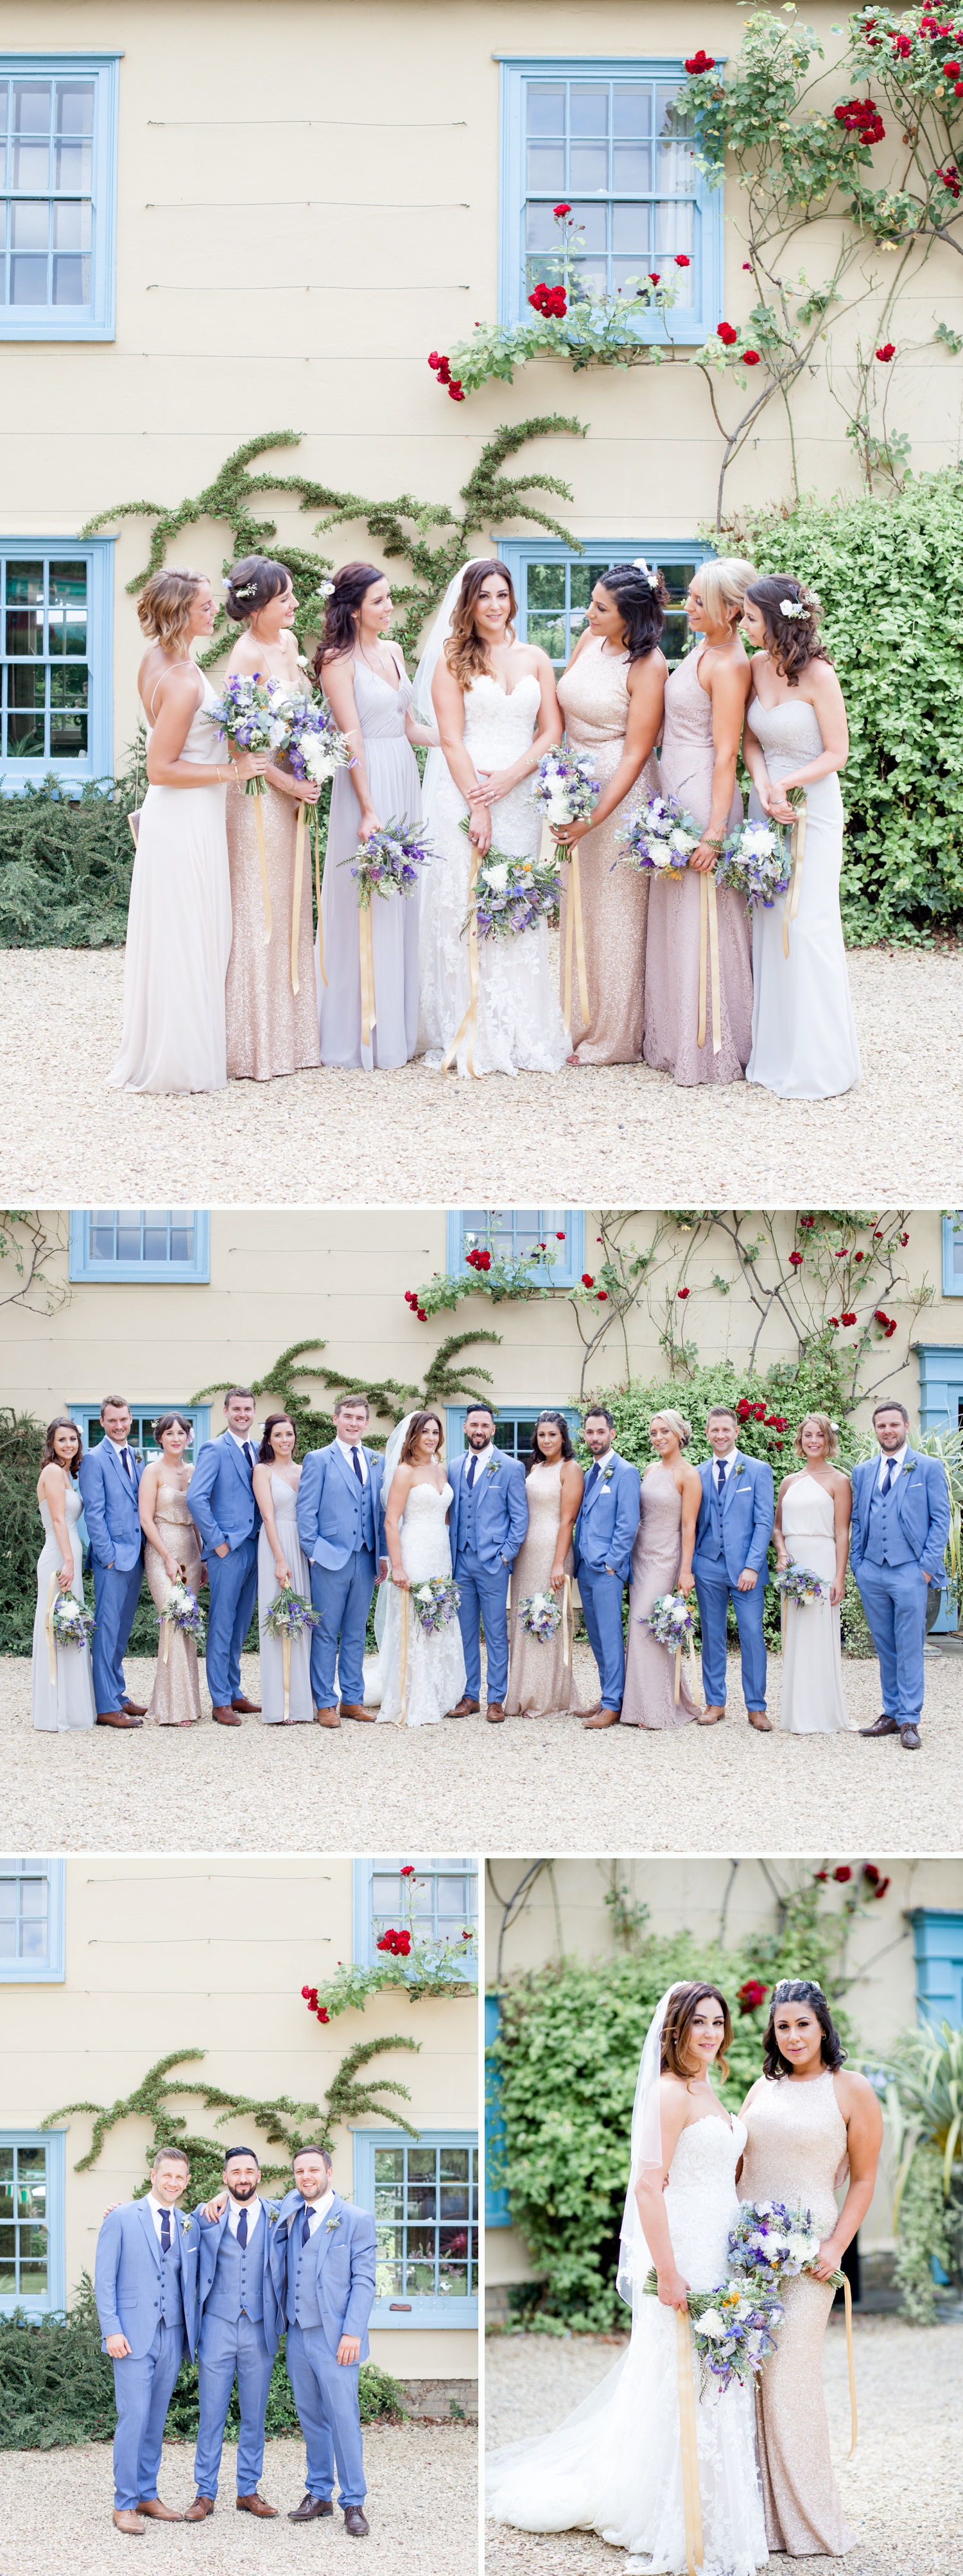 The Must Have Wedding Photographs You Need To Get